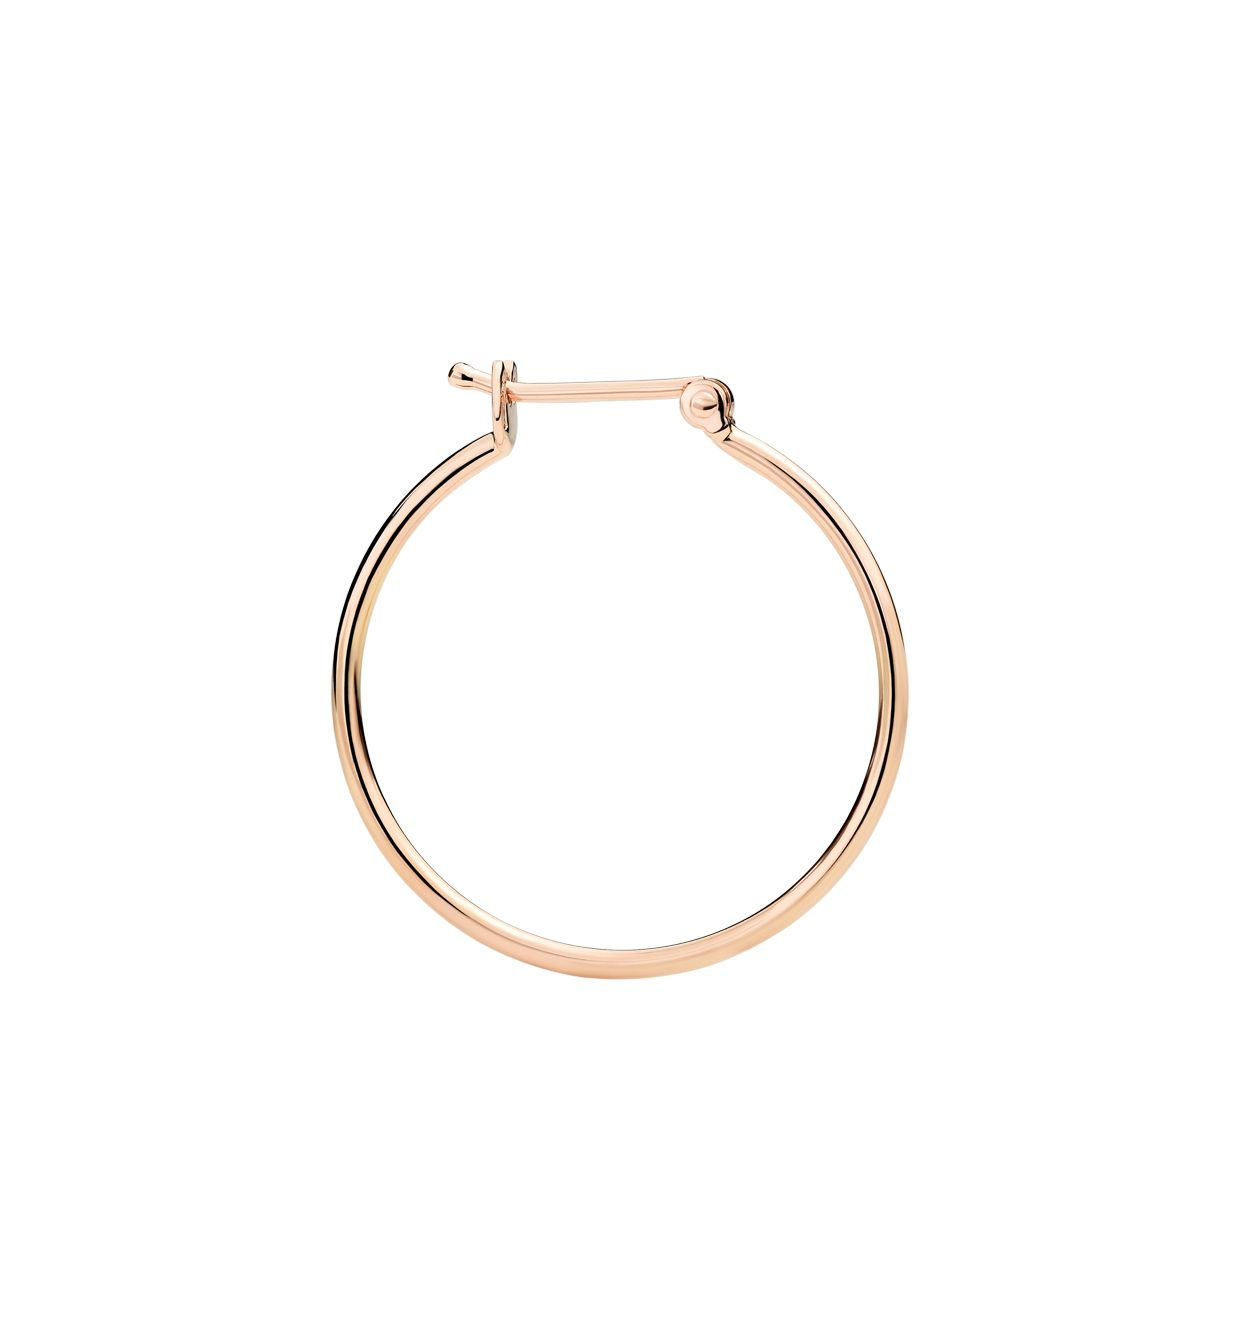 DoDo Bangle Hoop Earring in 9k Rose Gold - large (single) - Orsini Jewellers NZ